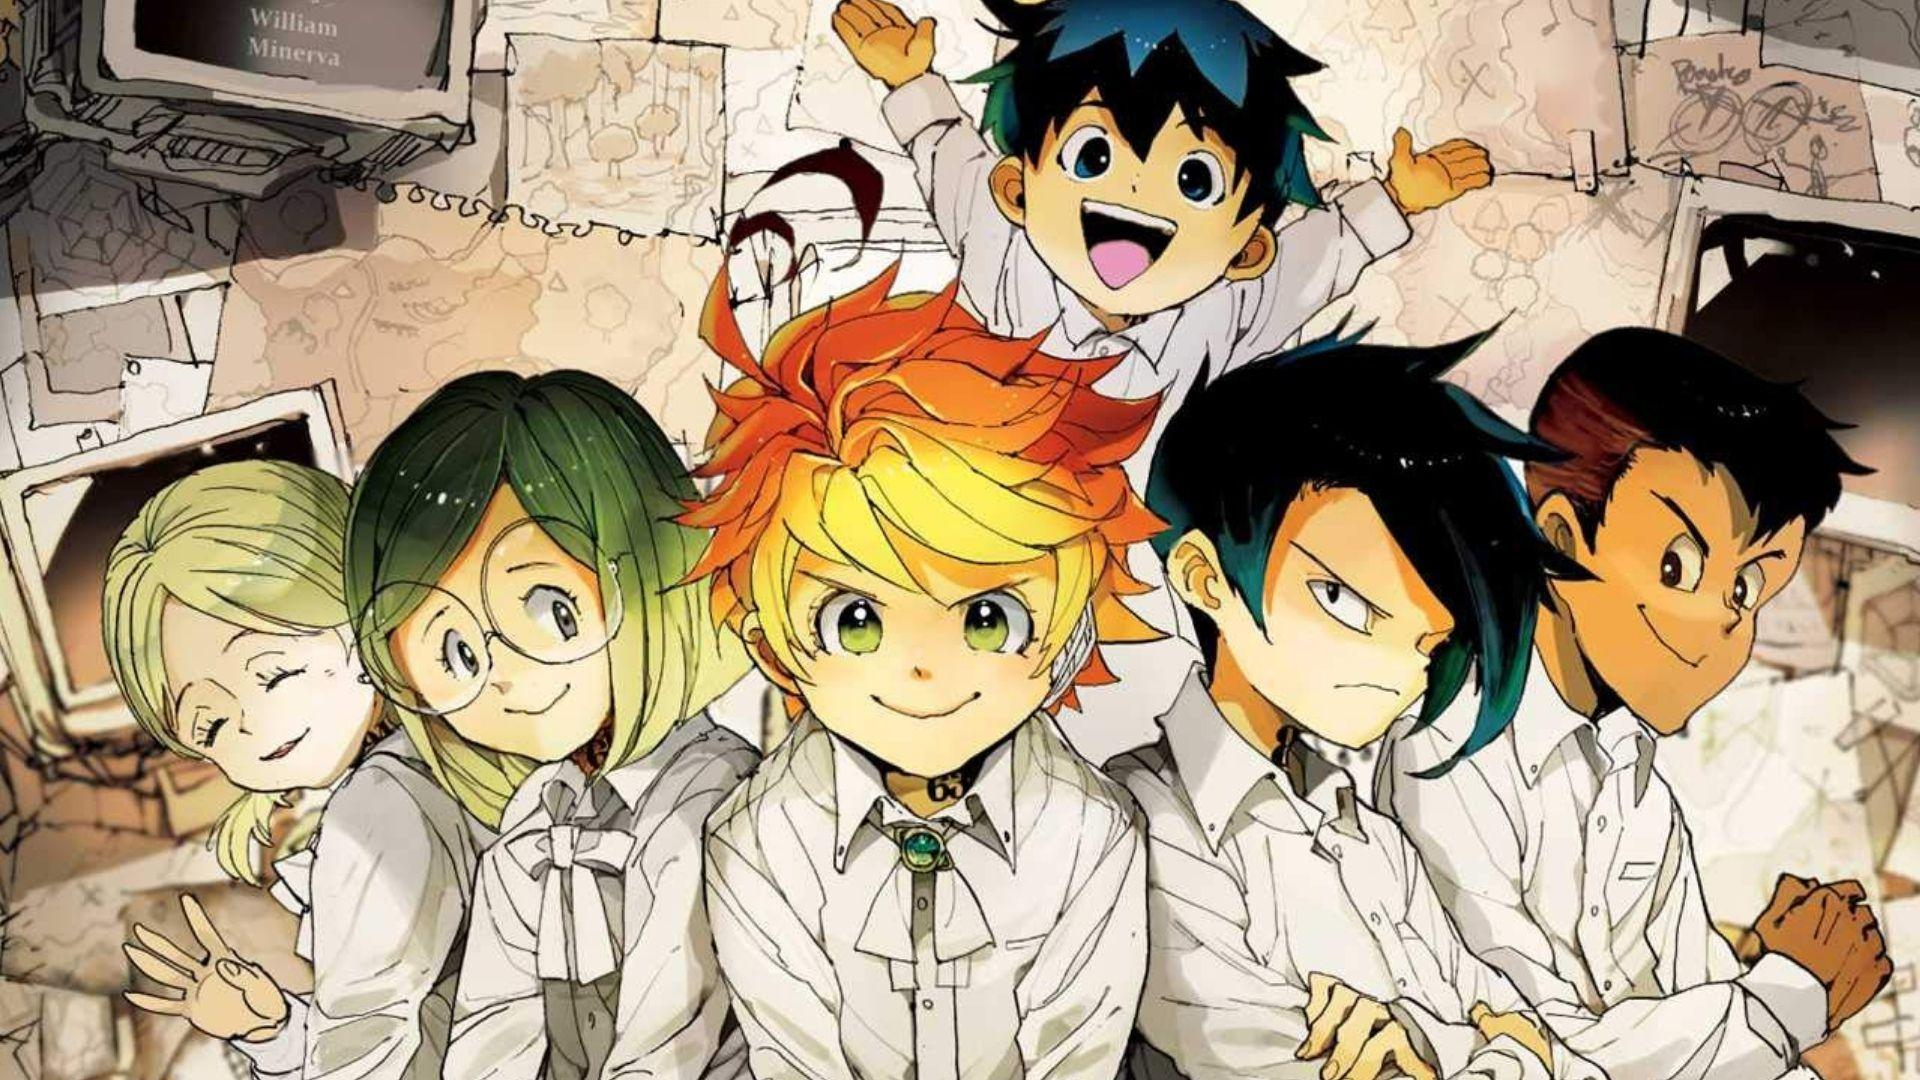 The Promised Neverland: un viaggio verso la libertà targato J